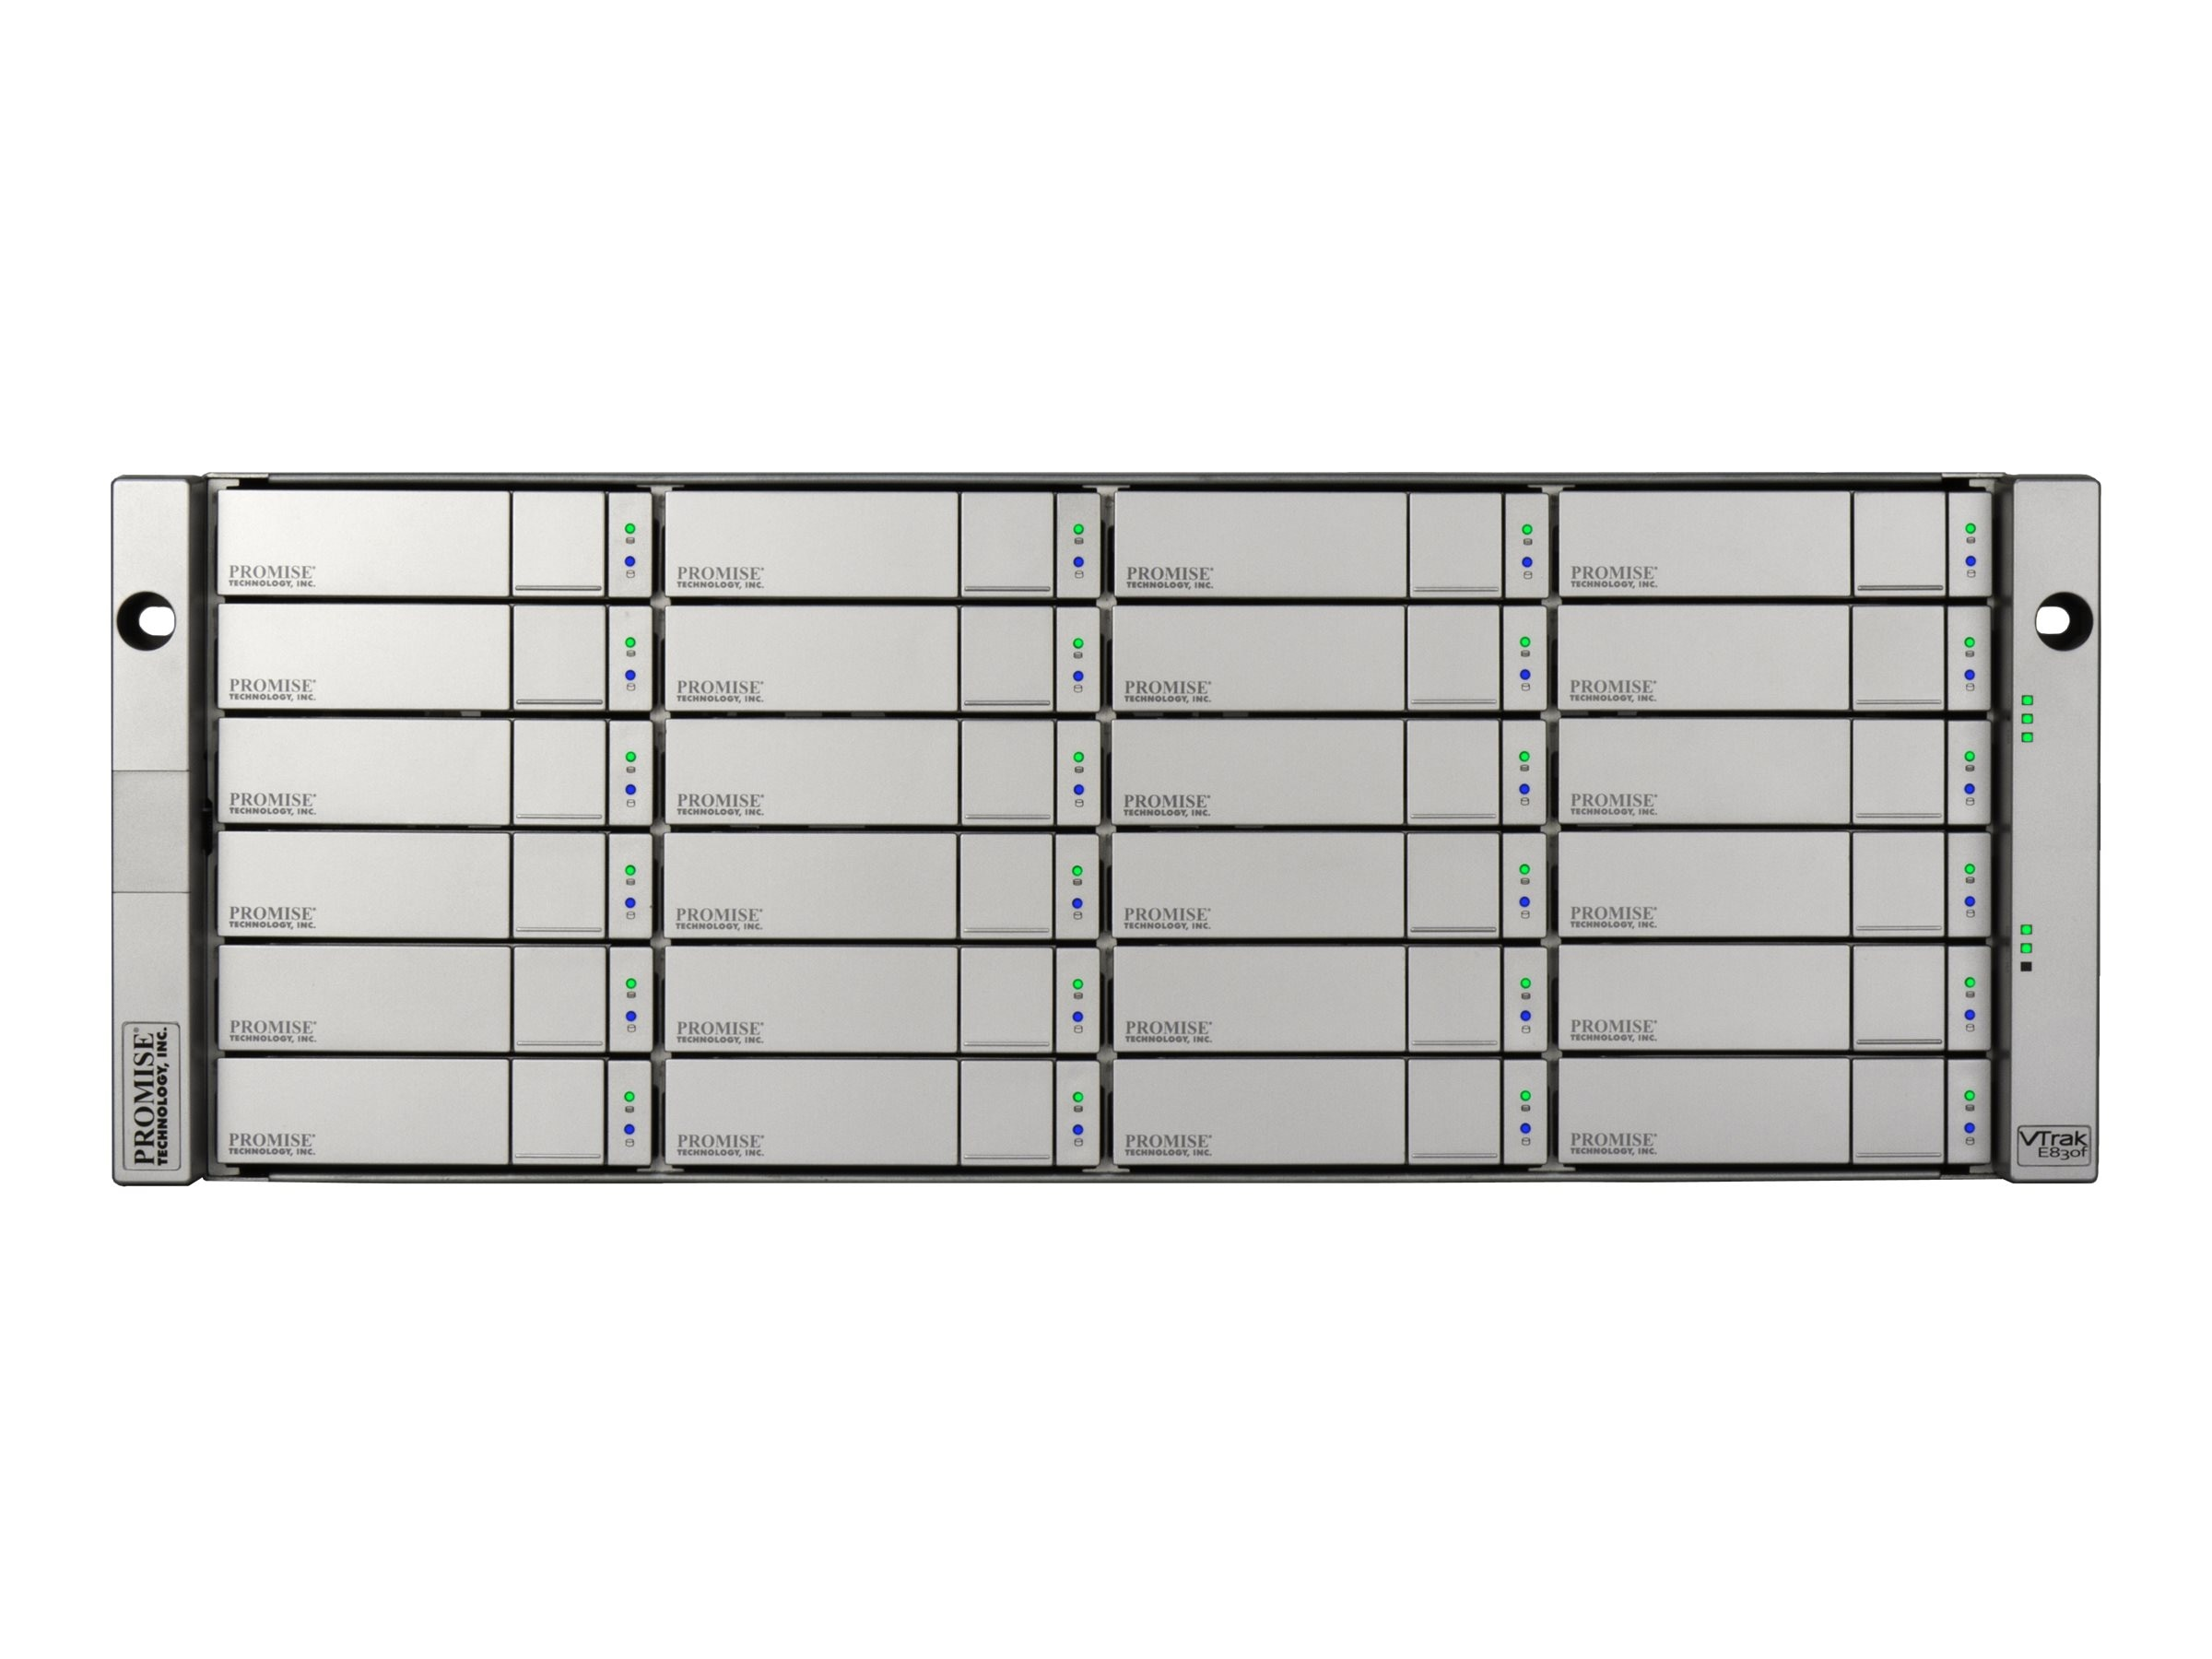 Promise 24-bay 4U SAS 6Gb s Dual Controller JBOD Enclosure w  (24) 4TB 7200 RPM SAS NL Hard Drives, J830SDQS4, 15787512, SAN Servers & Arrays